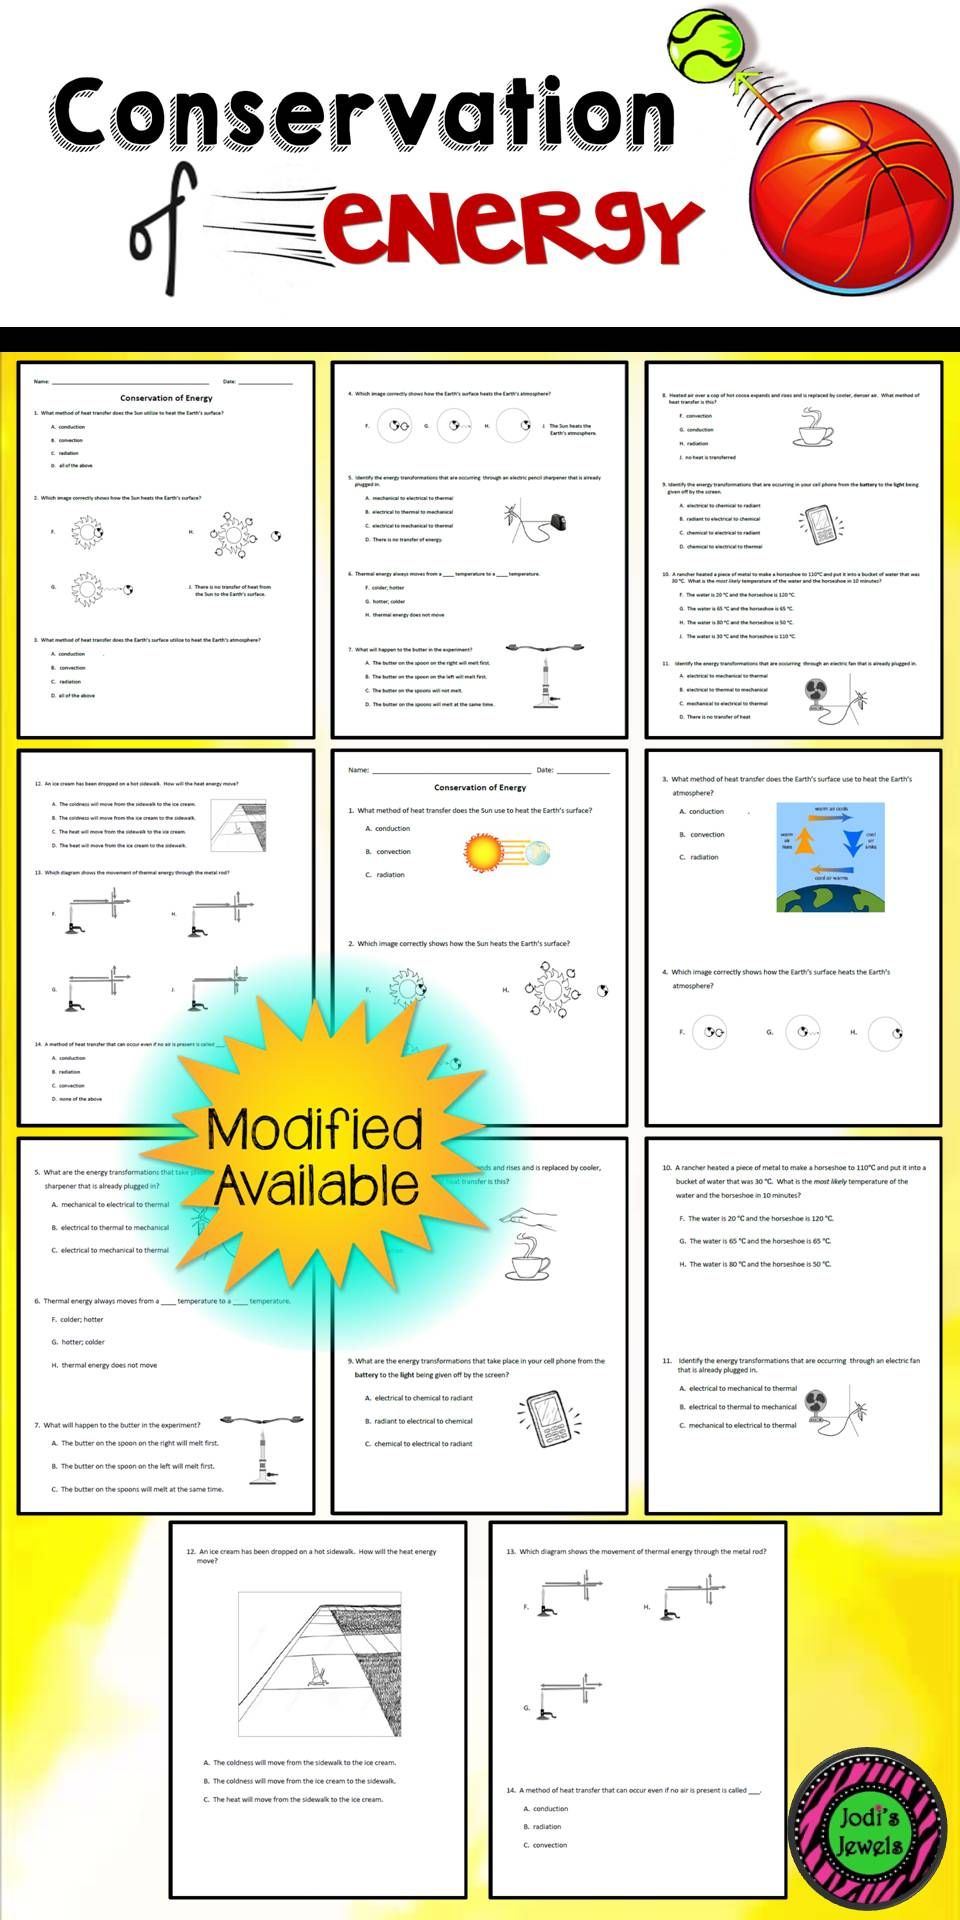 Created For An Introduction To The Conservation Of Energy Including Conduction Convect Co Teaching Elementary School Science Conduction Convection Radiation